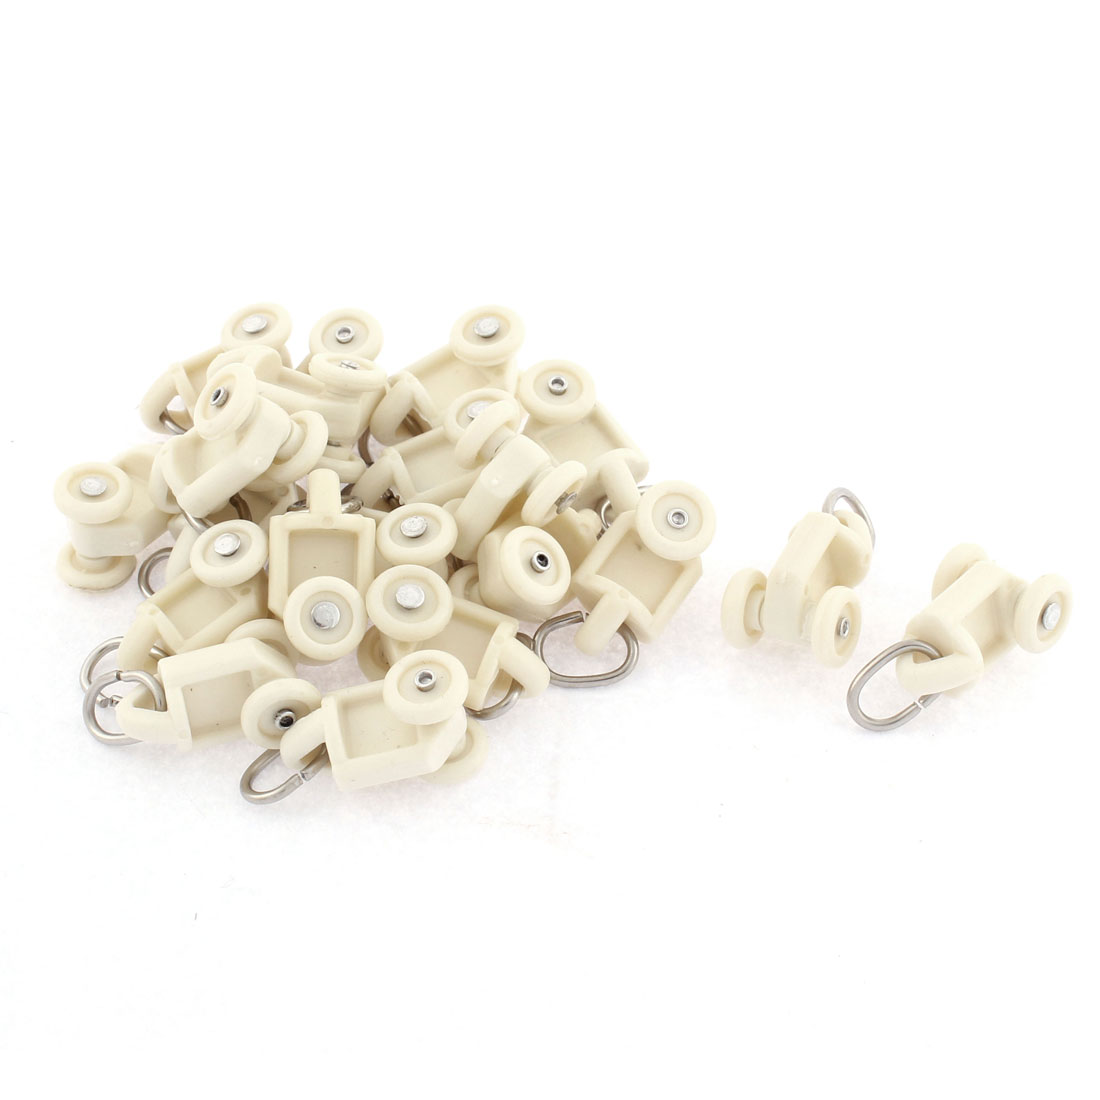 Home Plastic Curtain Track Carrier Roller 10mm Dia Wheel Beige 20 Pcs